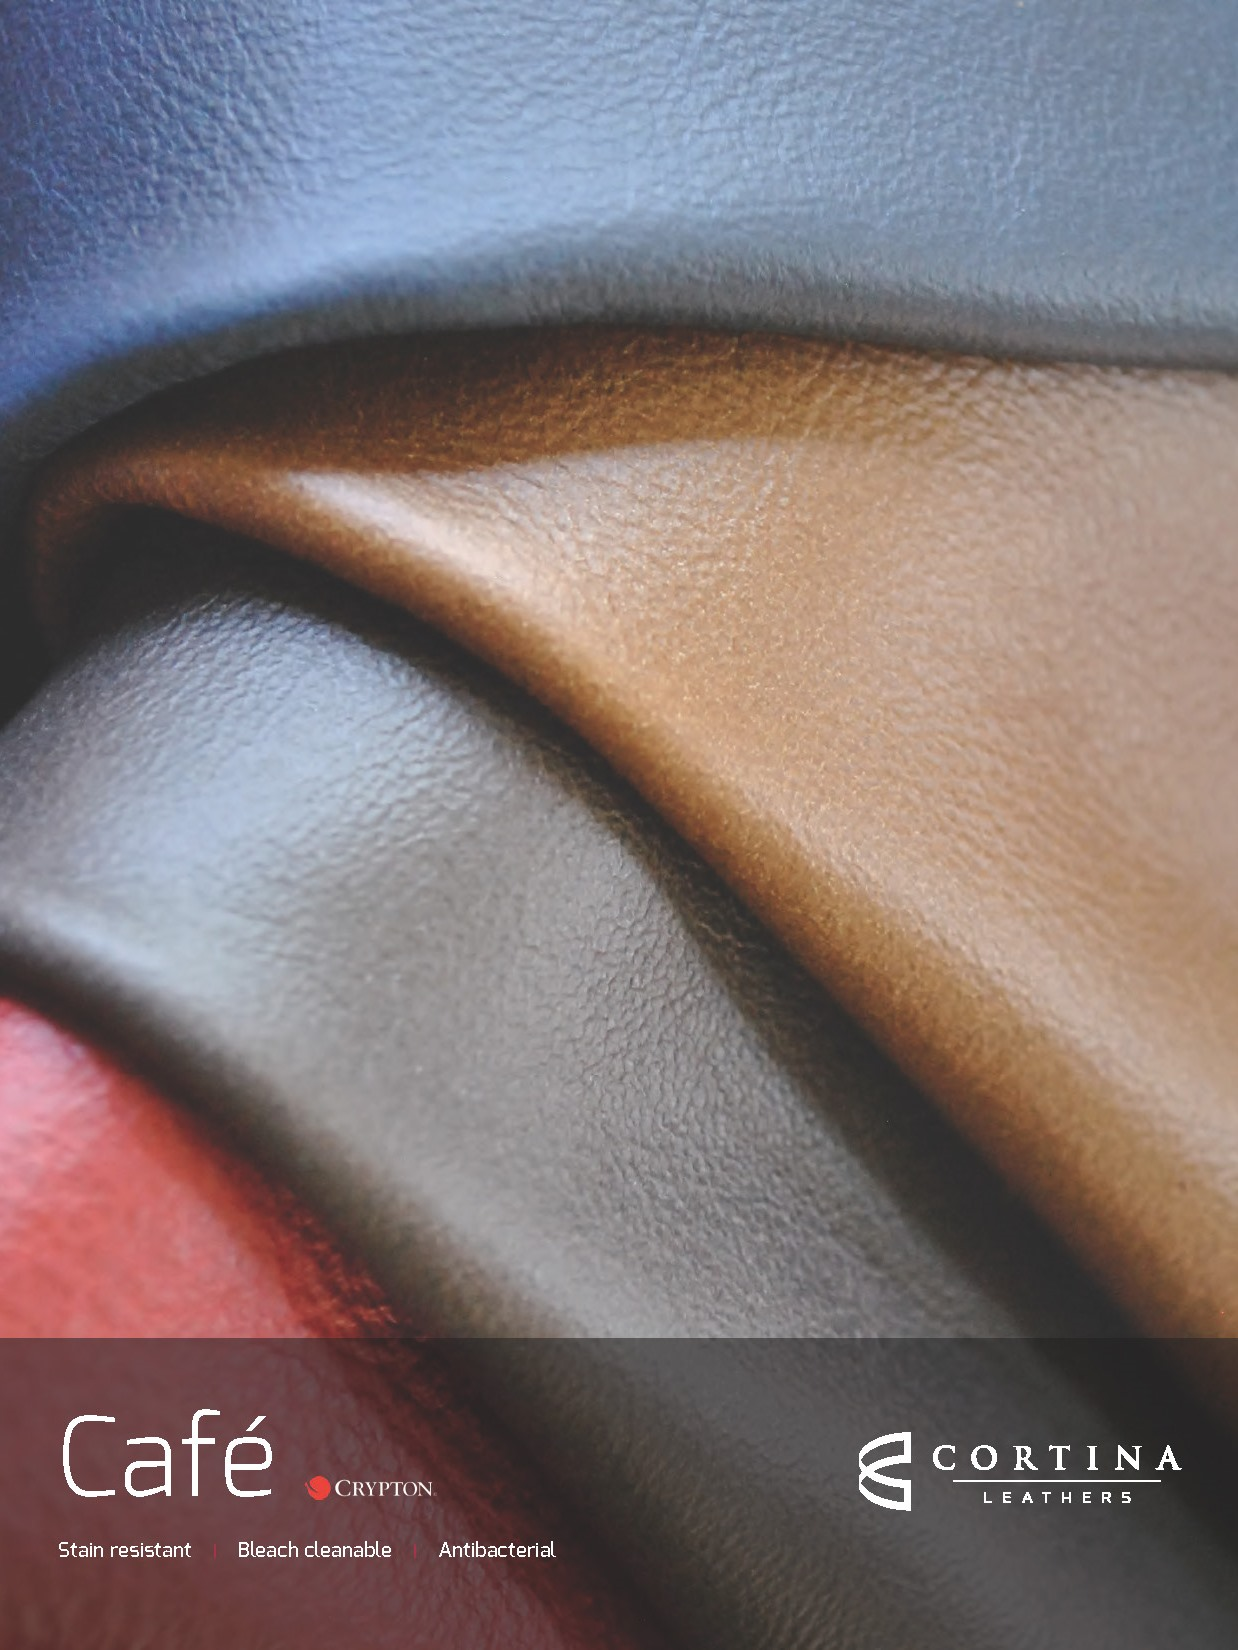 Cafe Leather